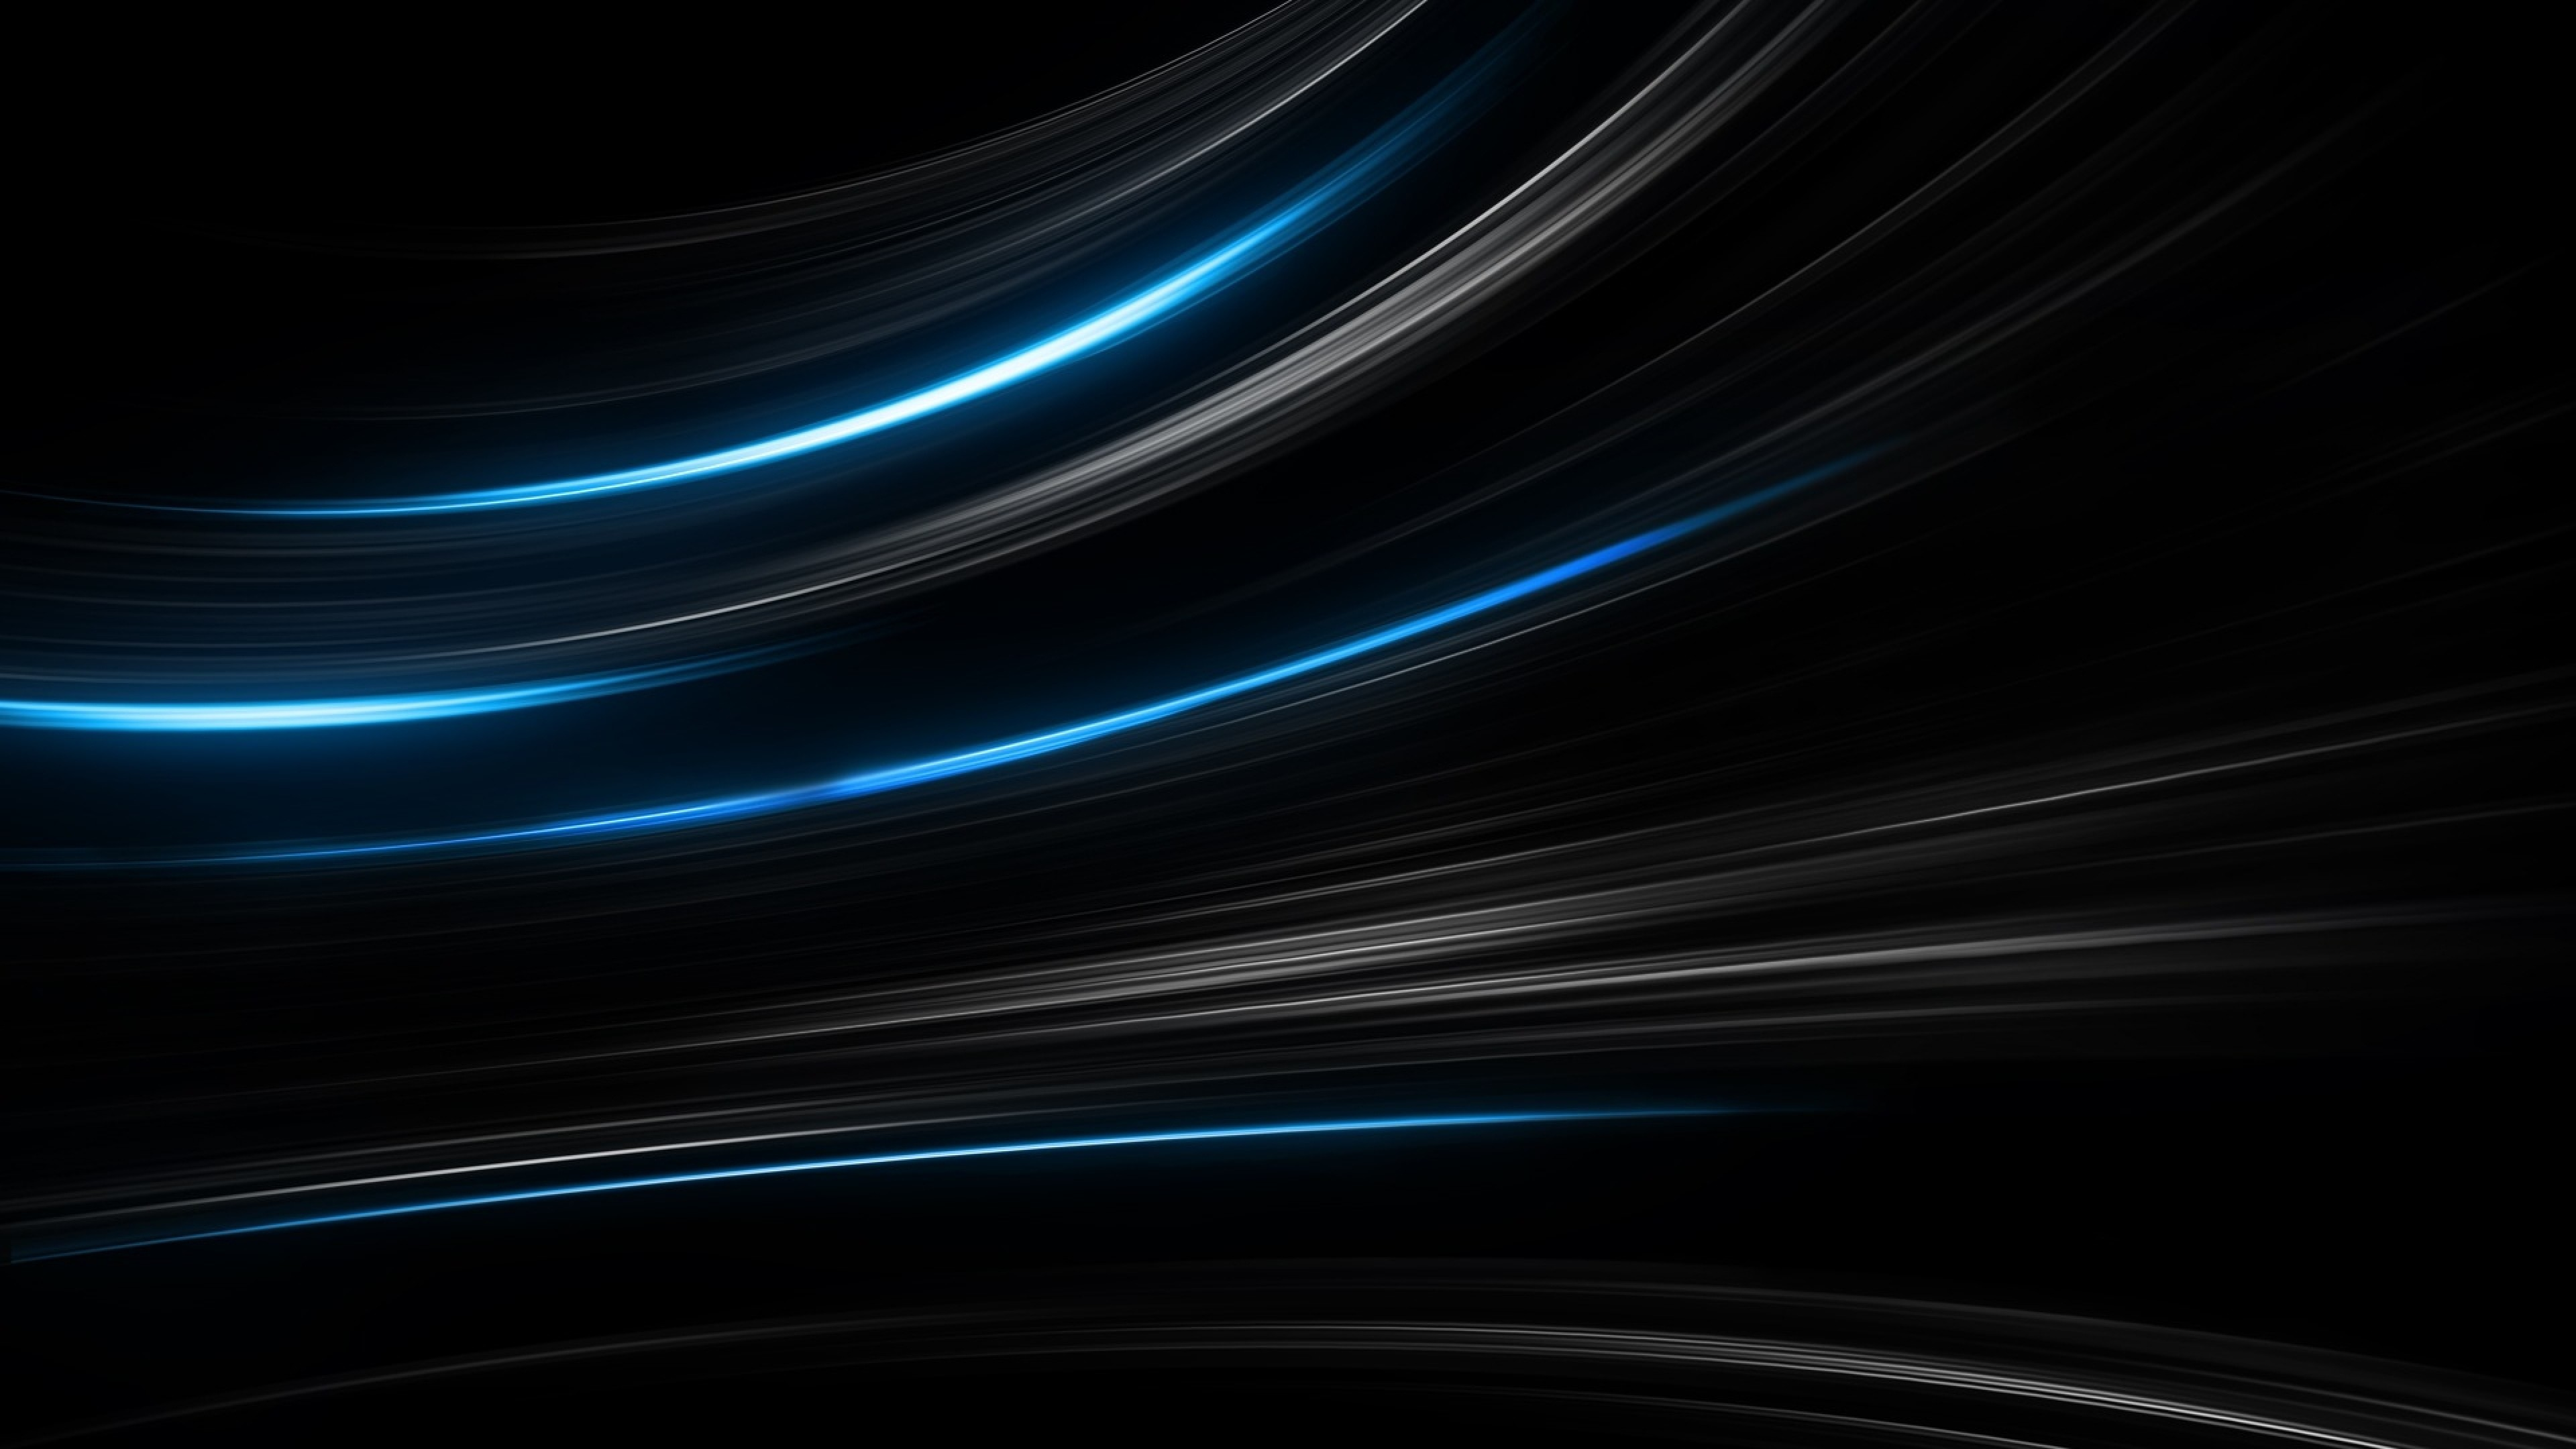 3840x2160 Preview wallpaper black, blue, abstract, stripes